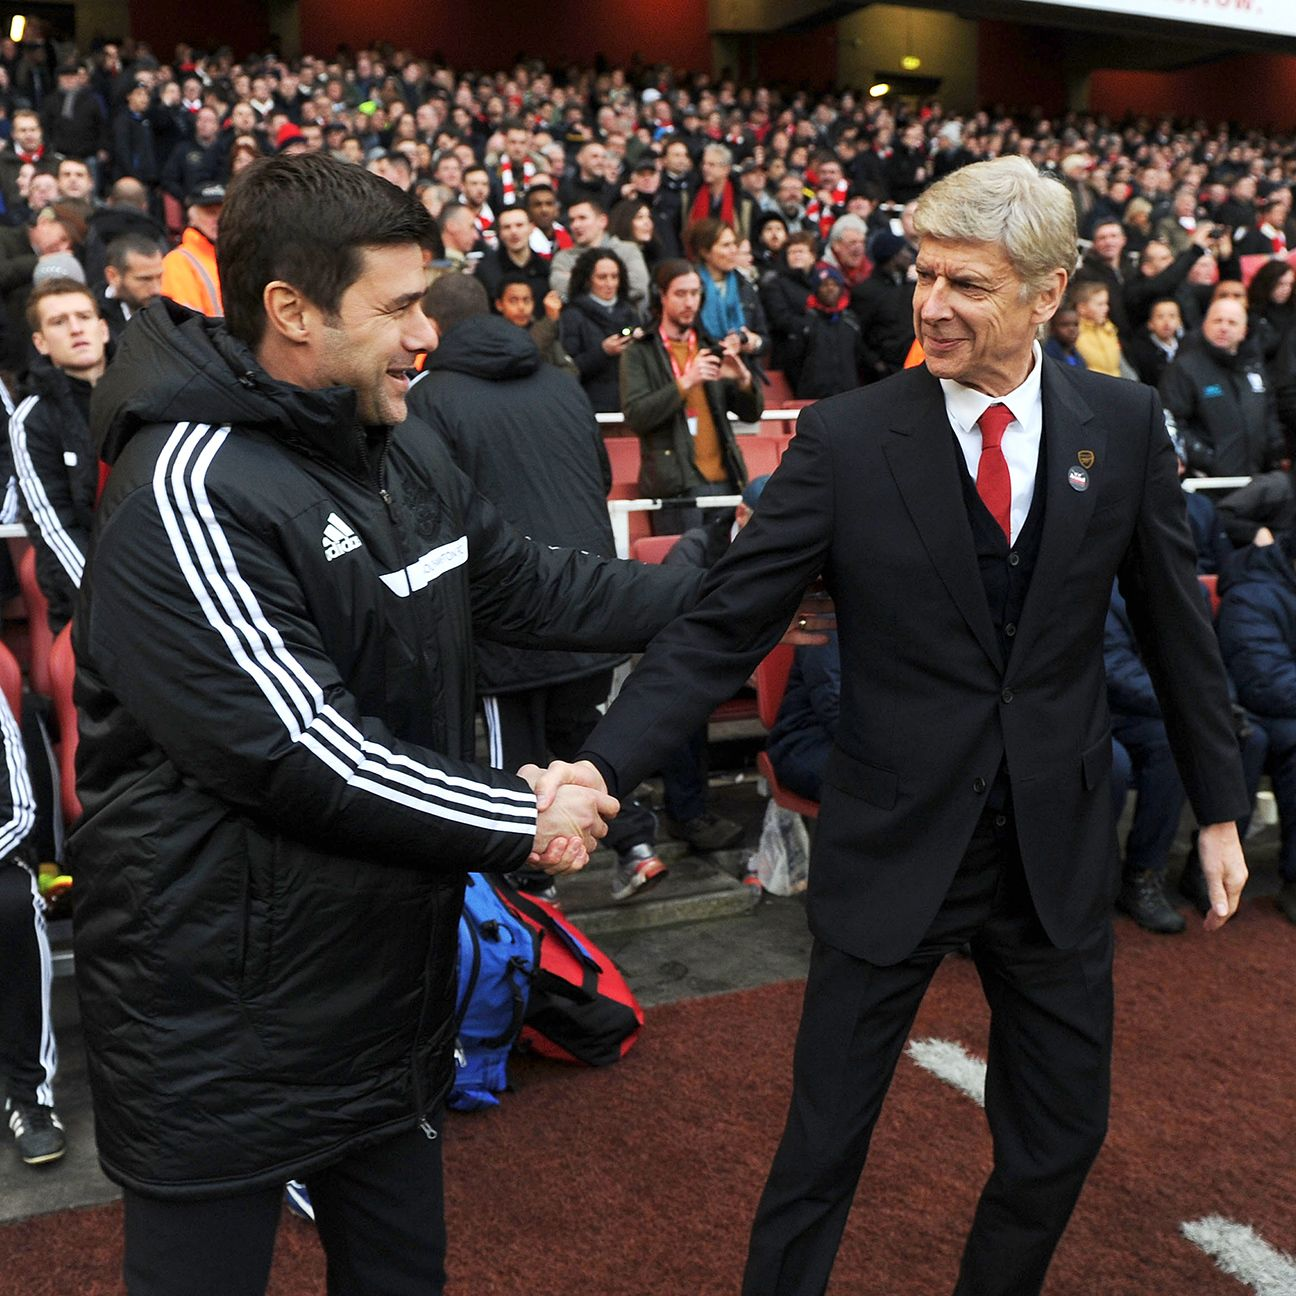 Mauricio Pochettino, left, is the latest Tottenham manager seeking to regain a hold in the North London derby over rivals Arsene Wenger and Arsenal.